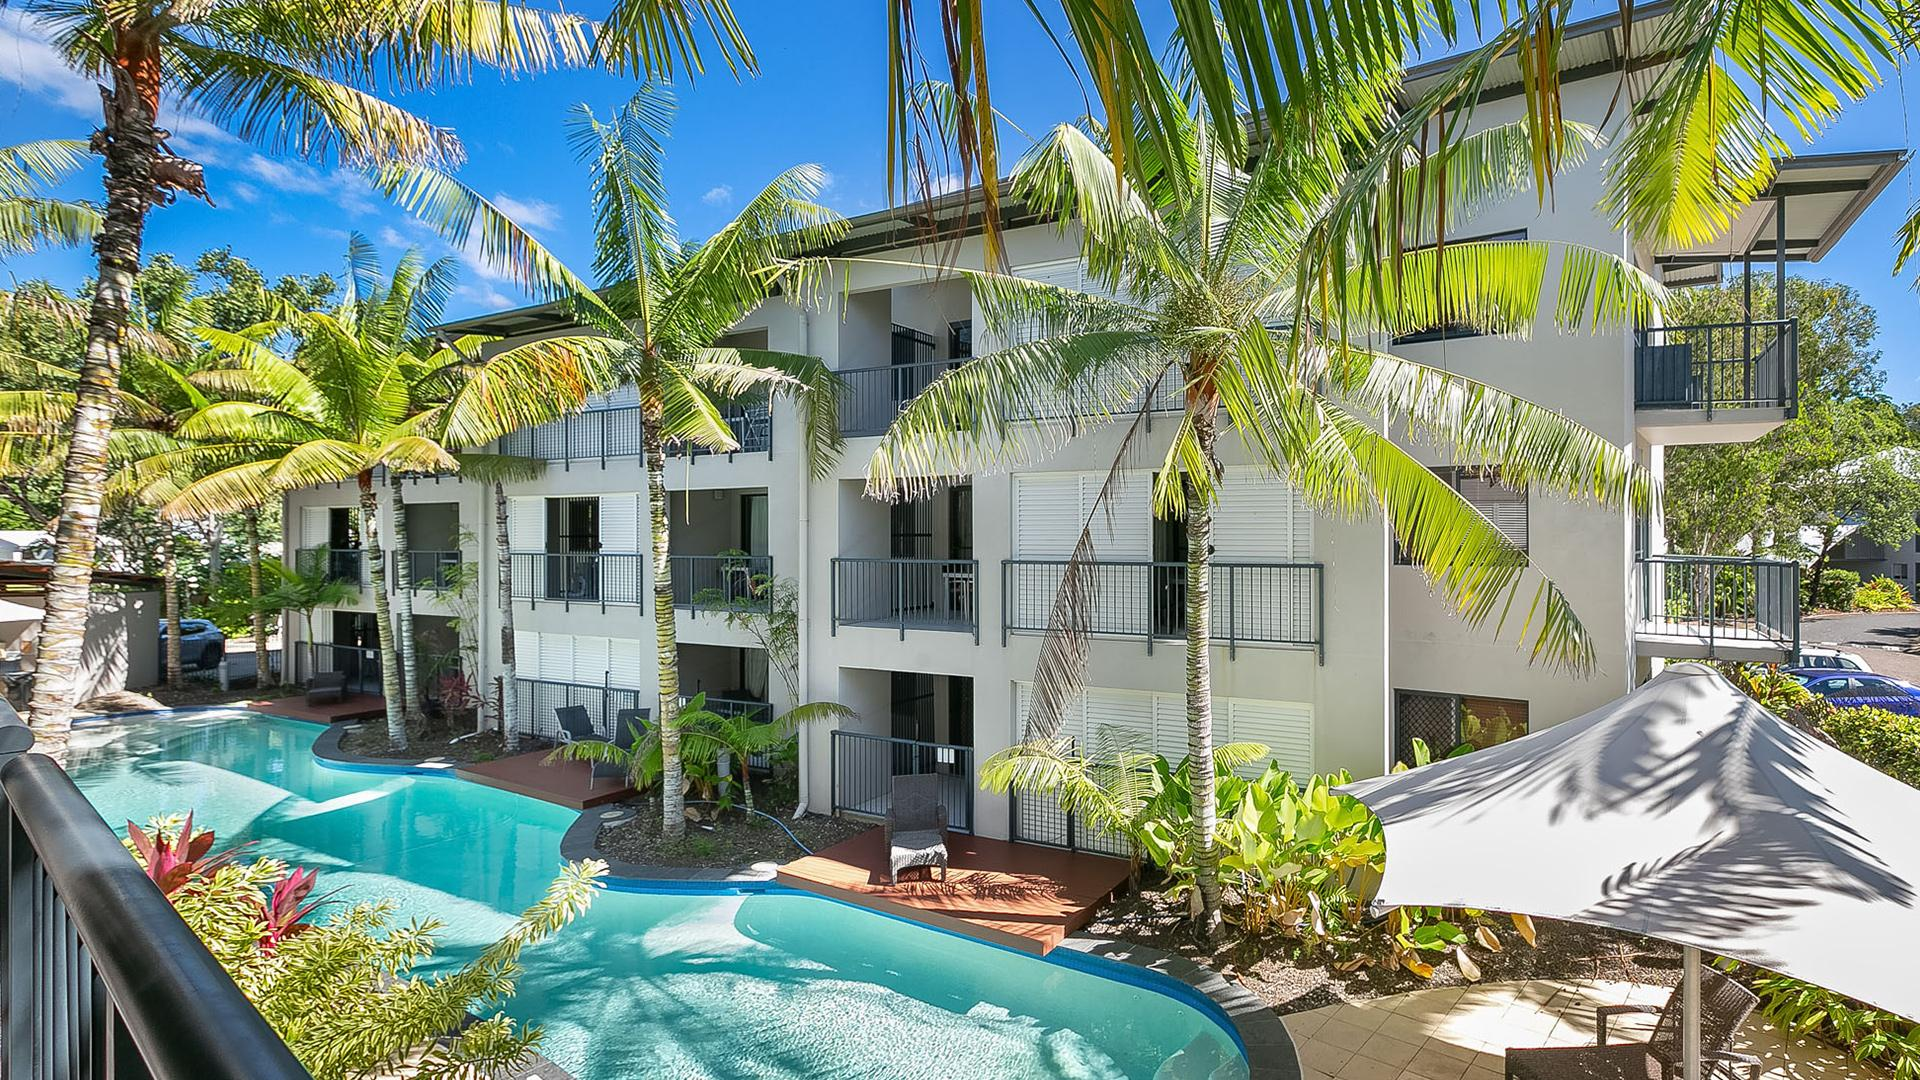 One-Bedroom Apartment image 1 at Blue Lagoon Resort JUNE 2020 by Cairns Regional, Queensland, Australia